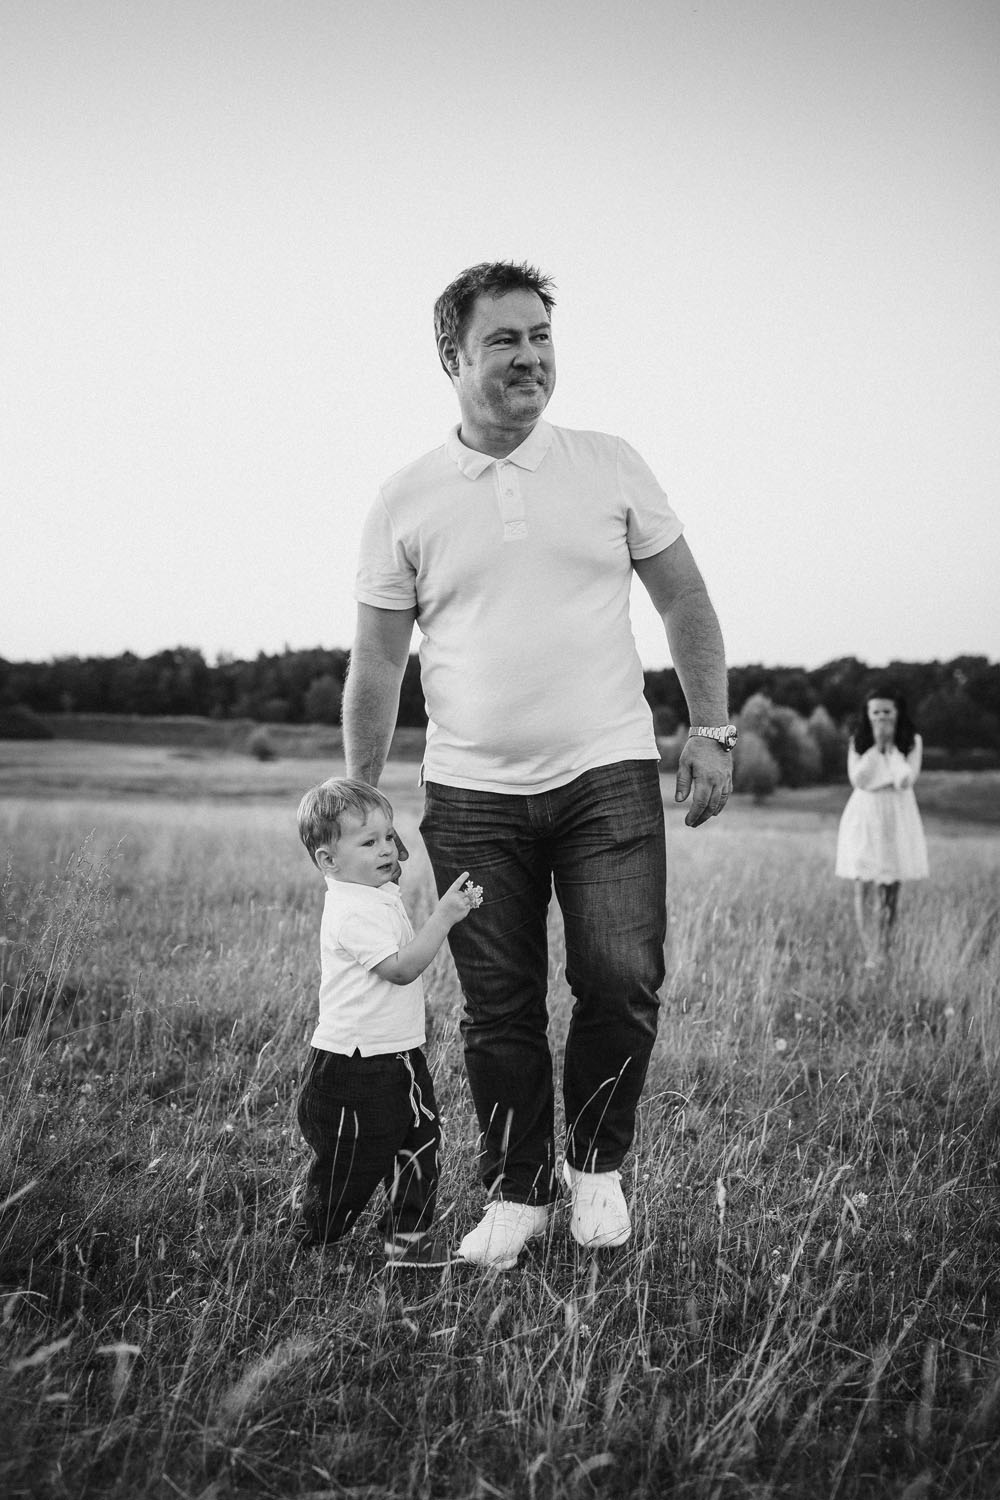 raissa simon photography family dragone augsburg bavaria meadow 064 - Viktoria, Sascha + Raffael